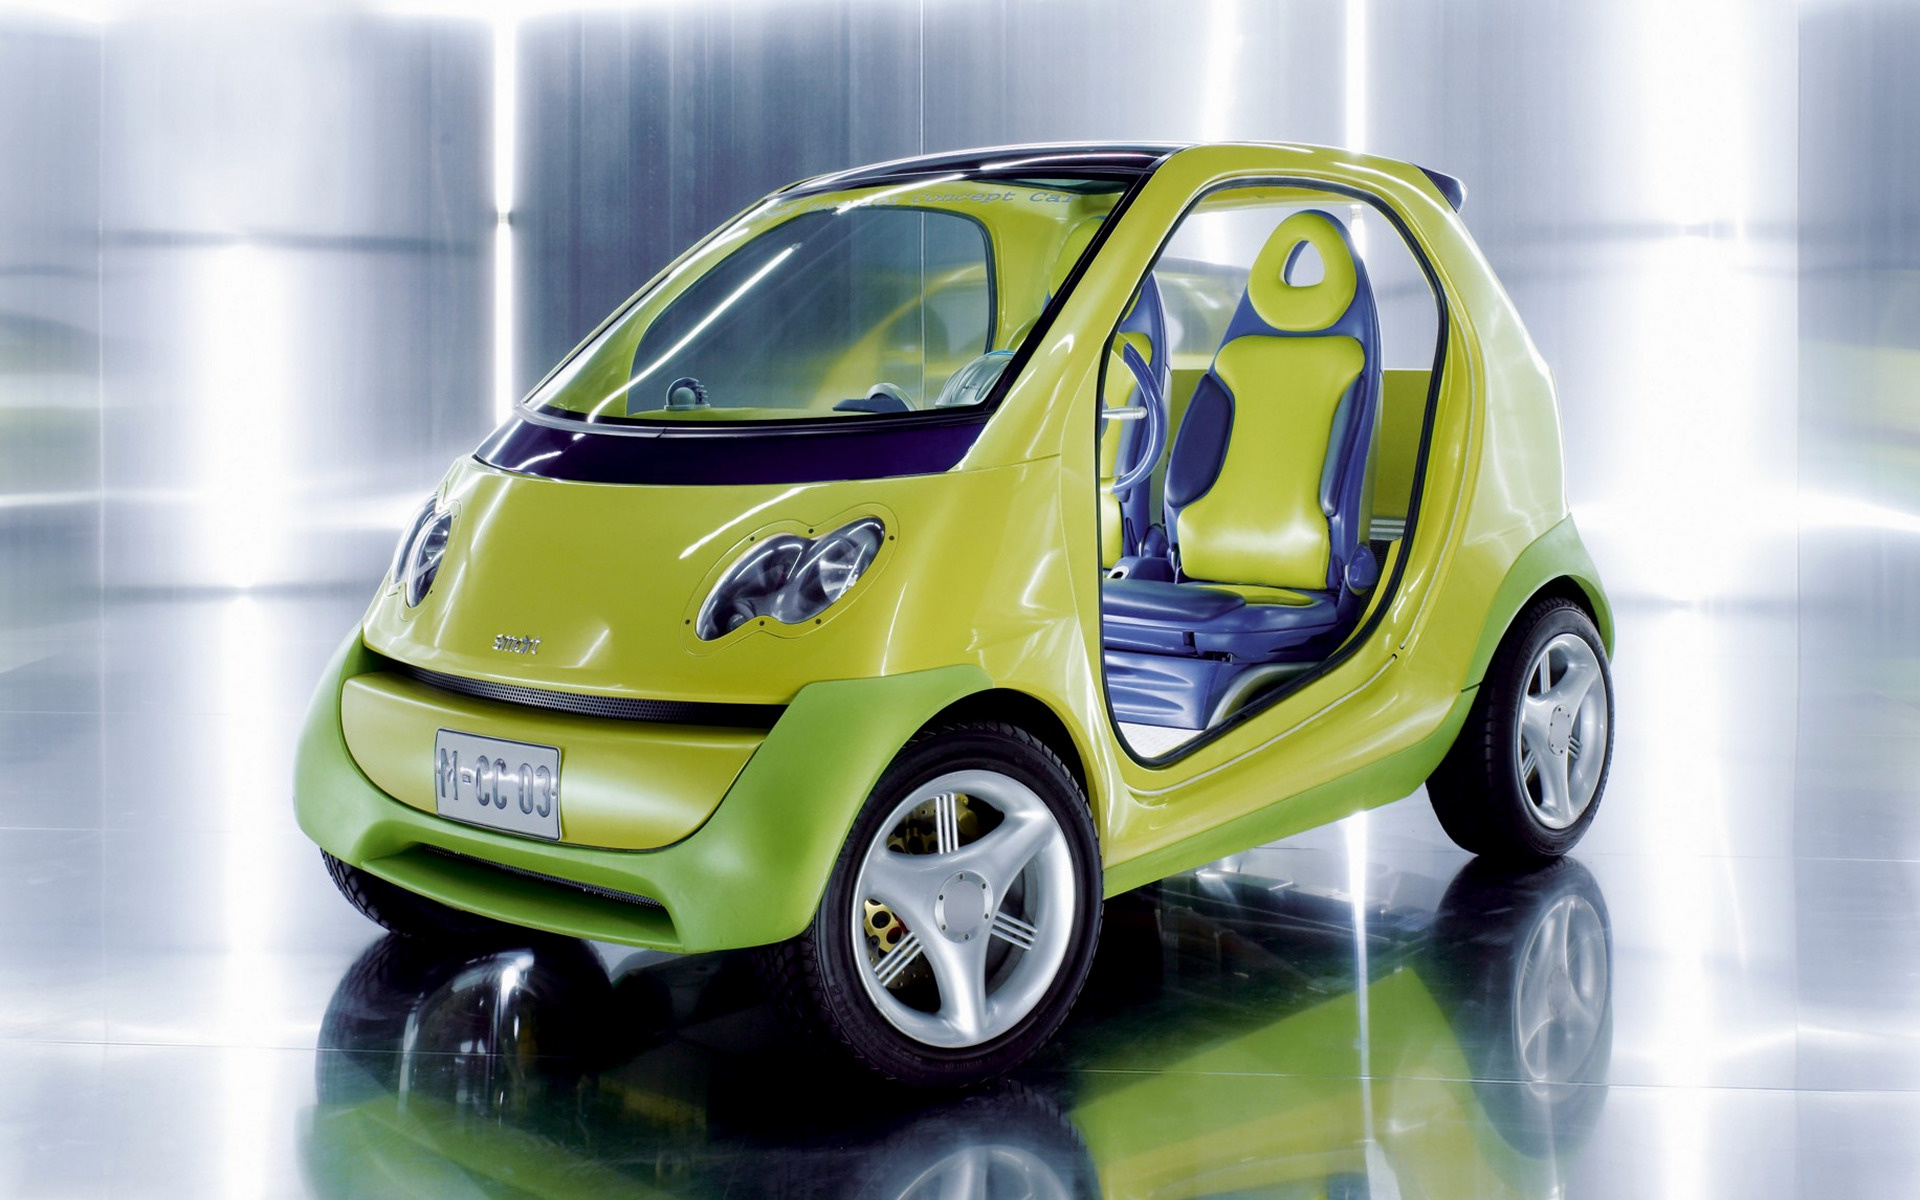 Smart Atlanta Concept (1996) Wallpapers and HD Images - Car Pixel